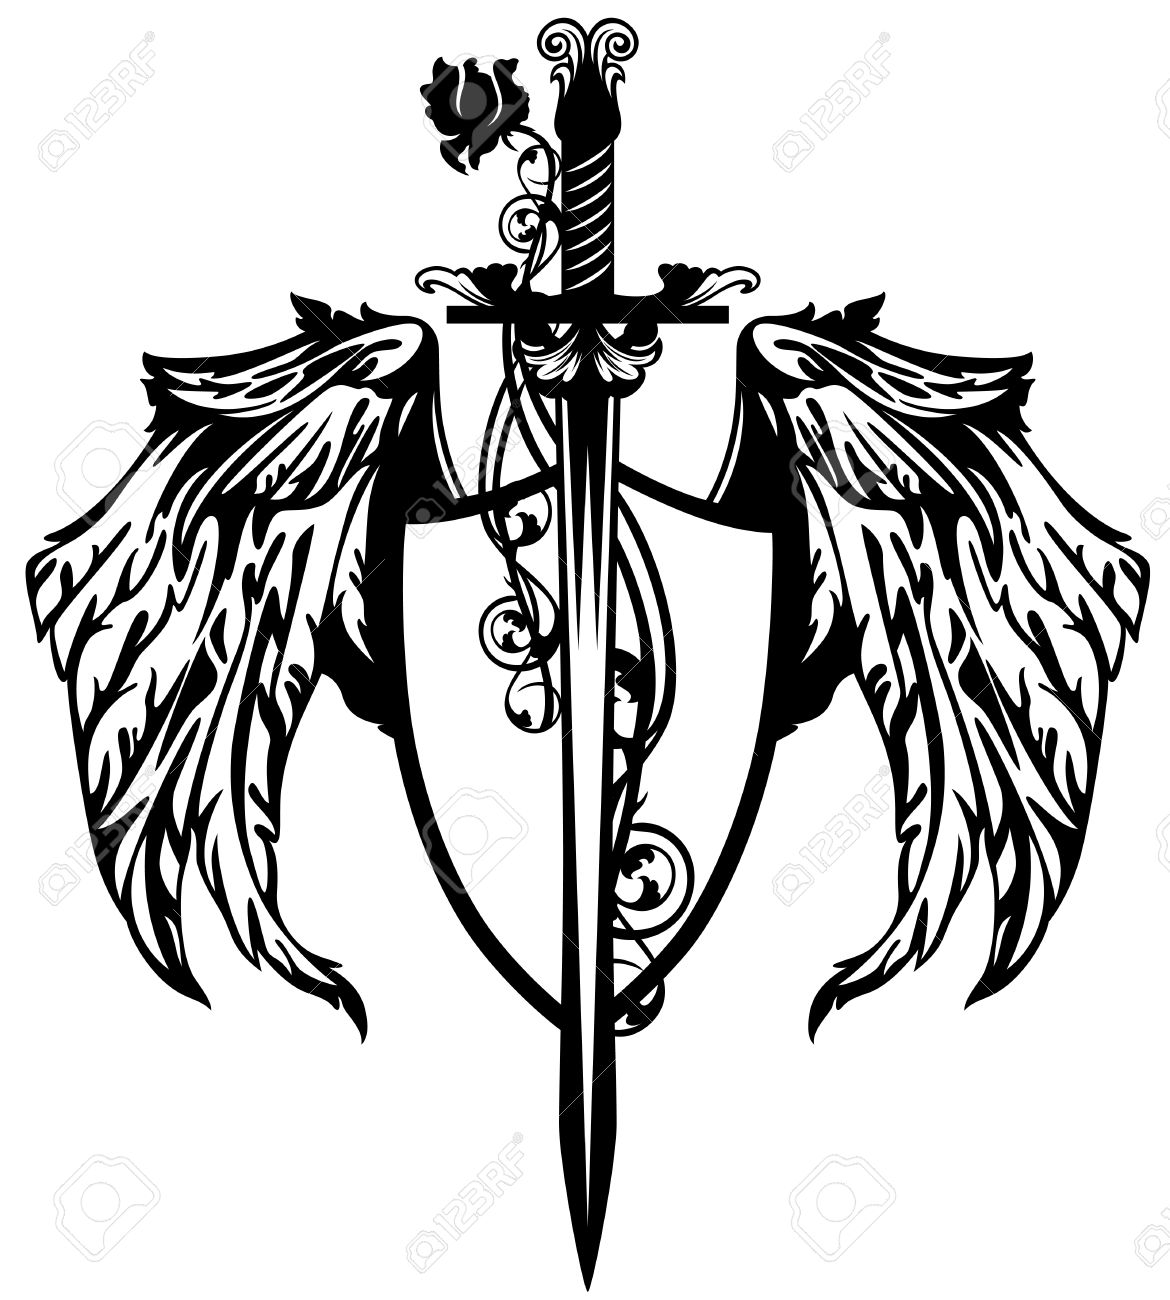 Sword With Rose Flower And Winged Shield Design Royalty Free.